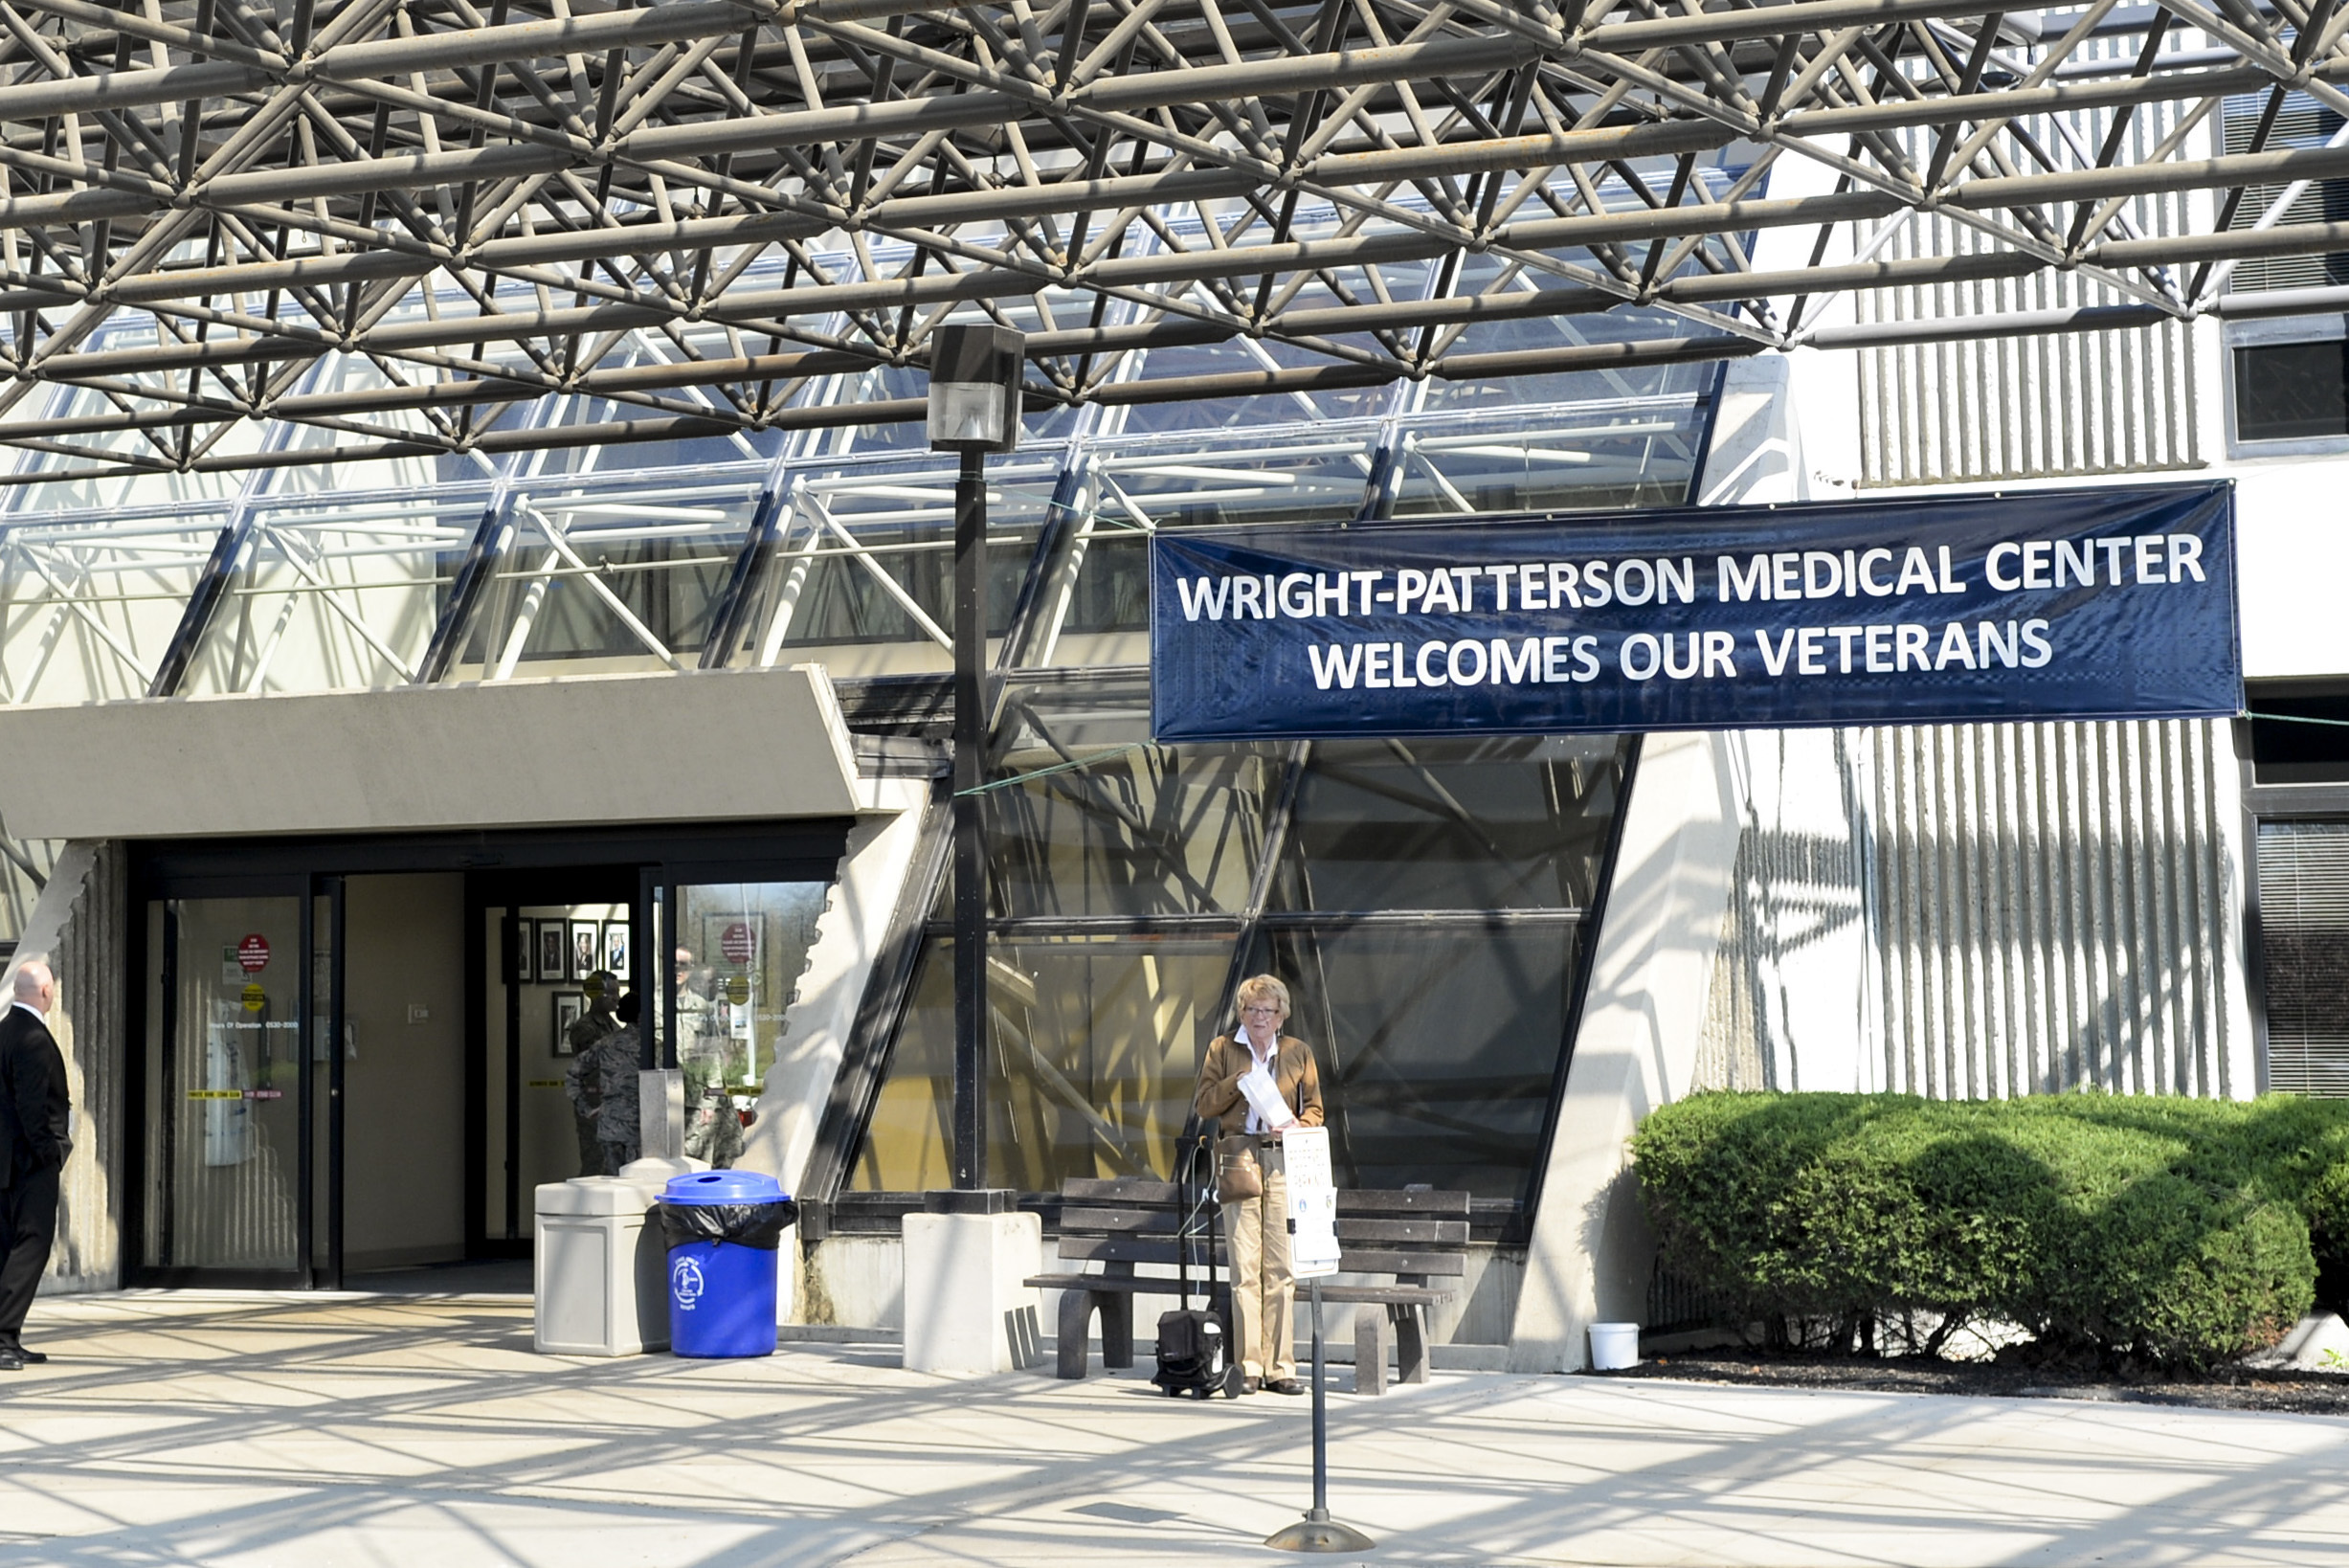 The White House has been discussing a plan to merge the Department of Veterans Affairs and the military health systems. Wright-Patterson Medical Center has a patient sharing agreement with the VA, allowing veterans to attend some medical appointments there. (Wesley Farnsworth/Air Force)